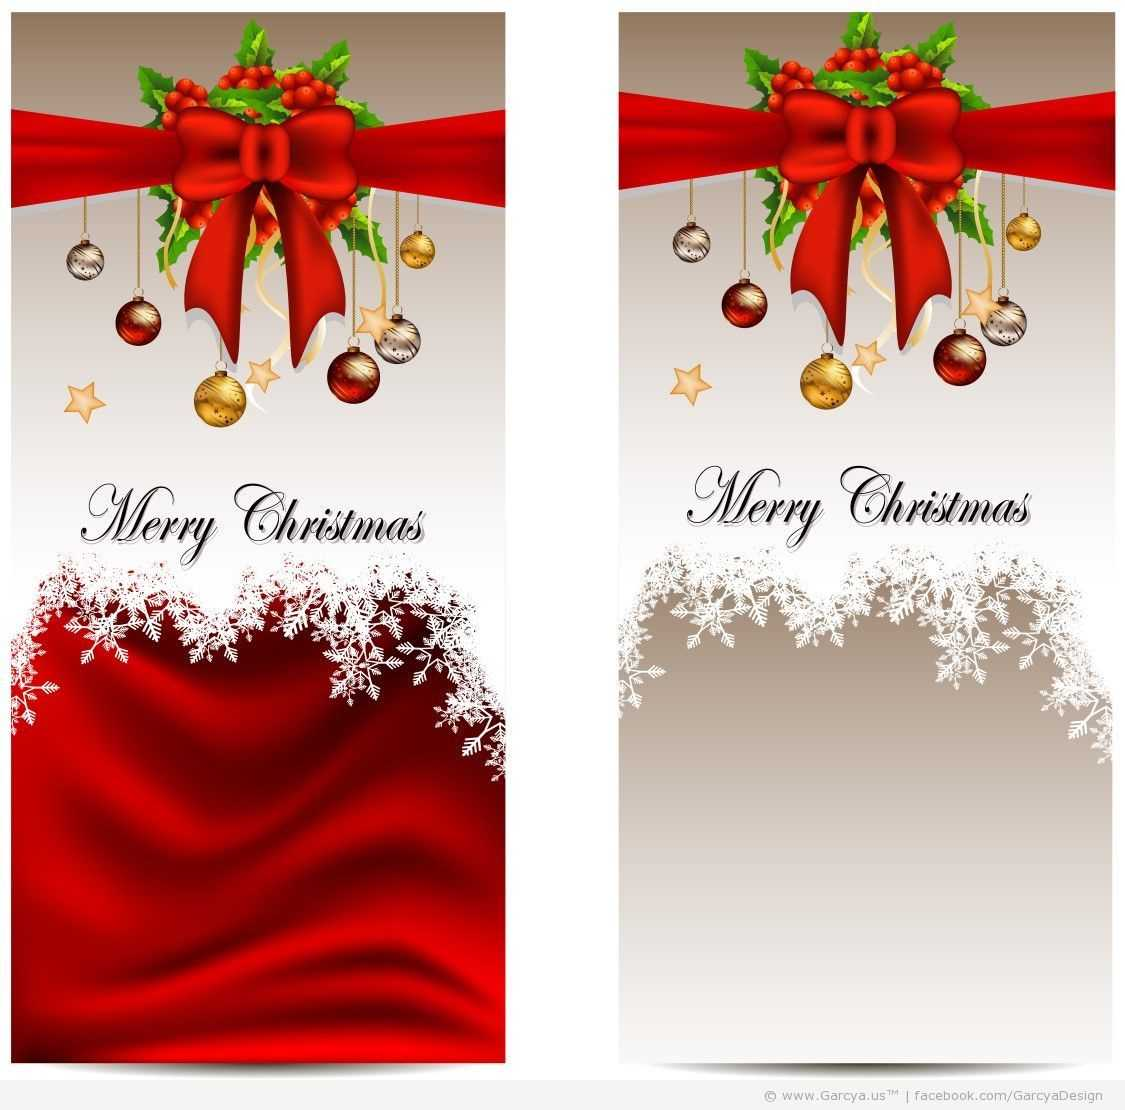 004 Photo Christmas Card Templates Template Ideas Holiday Intended For Christmas Photo Cards Templates Free Downloads